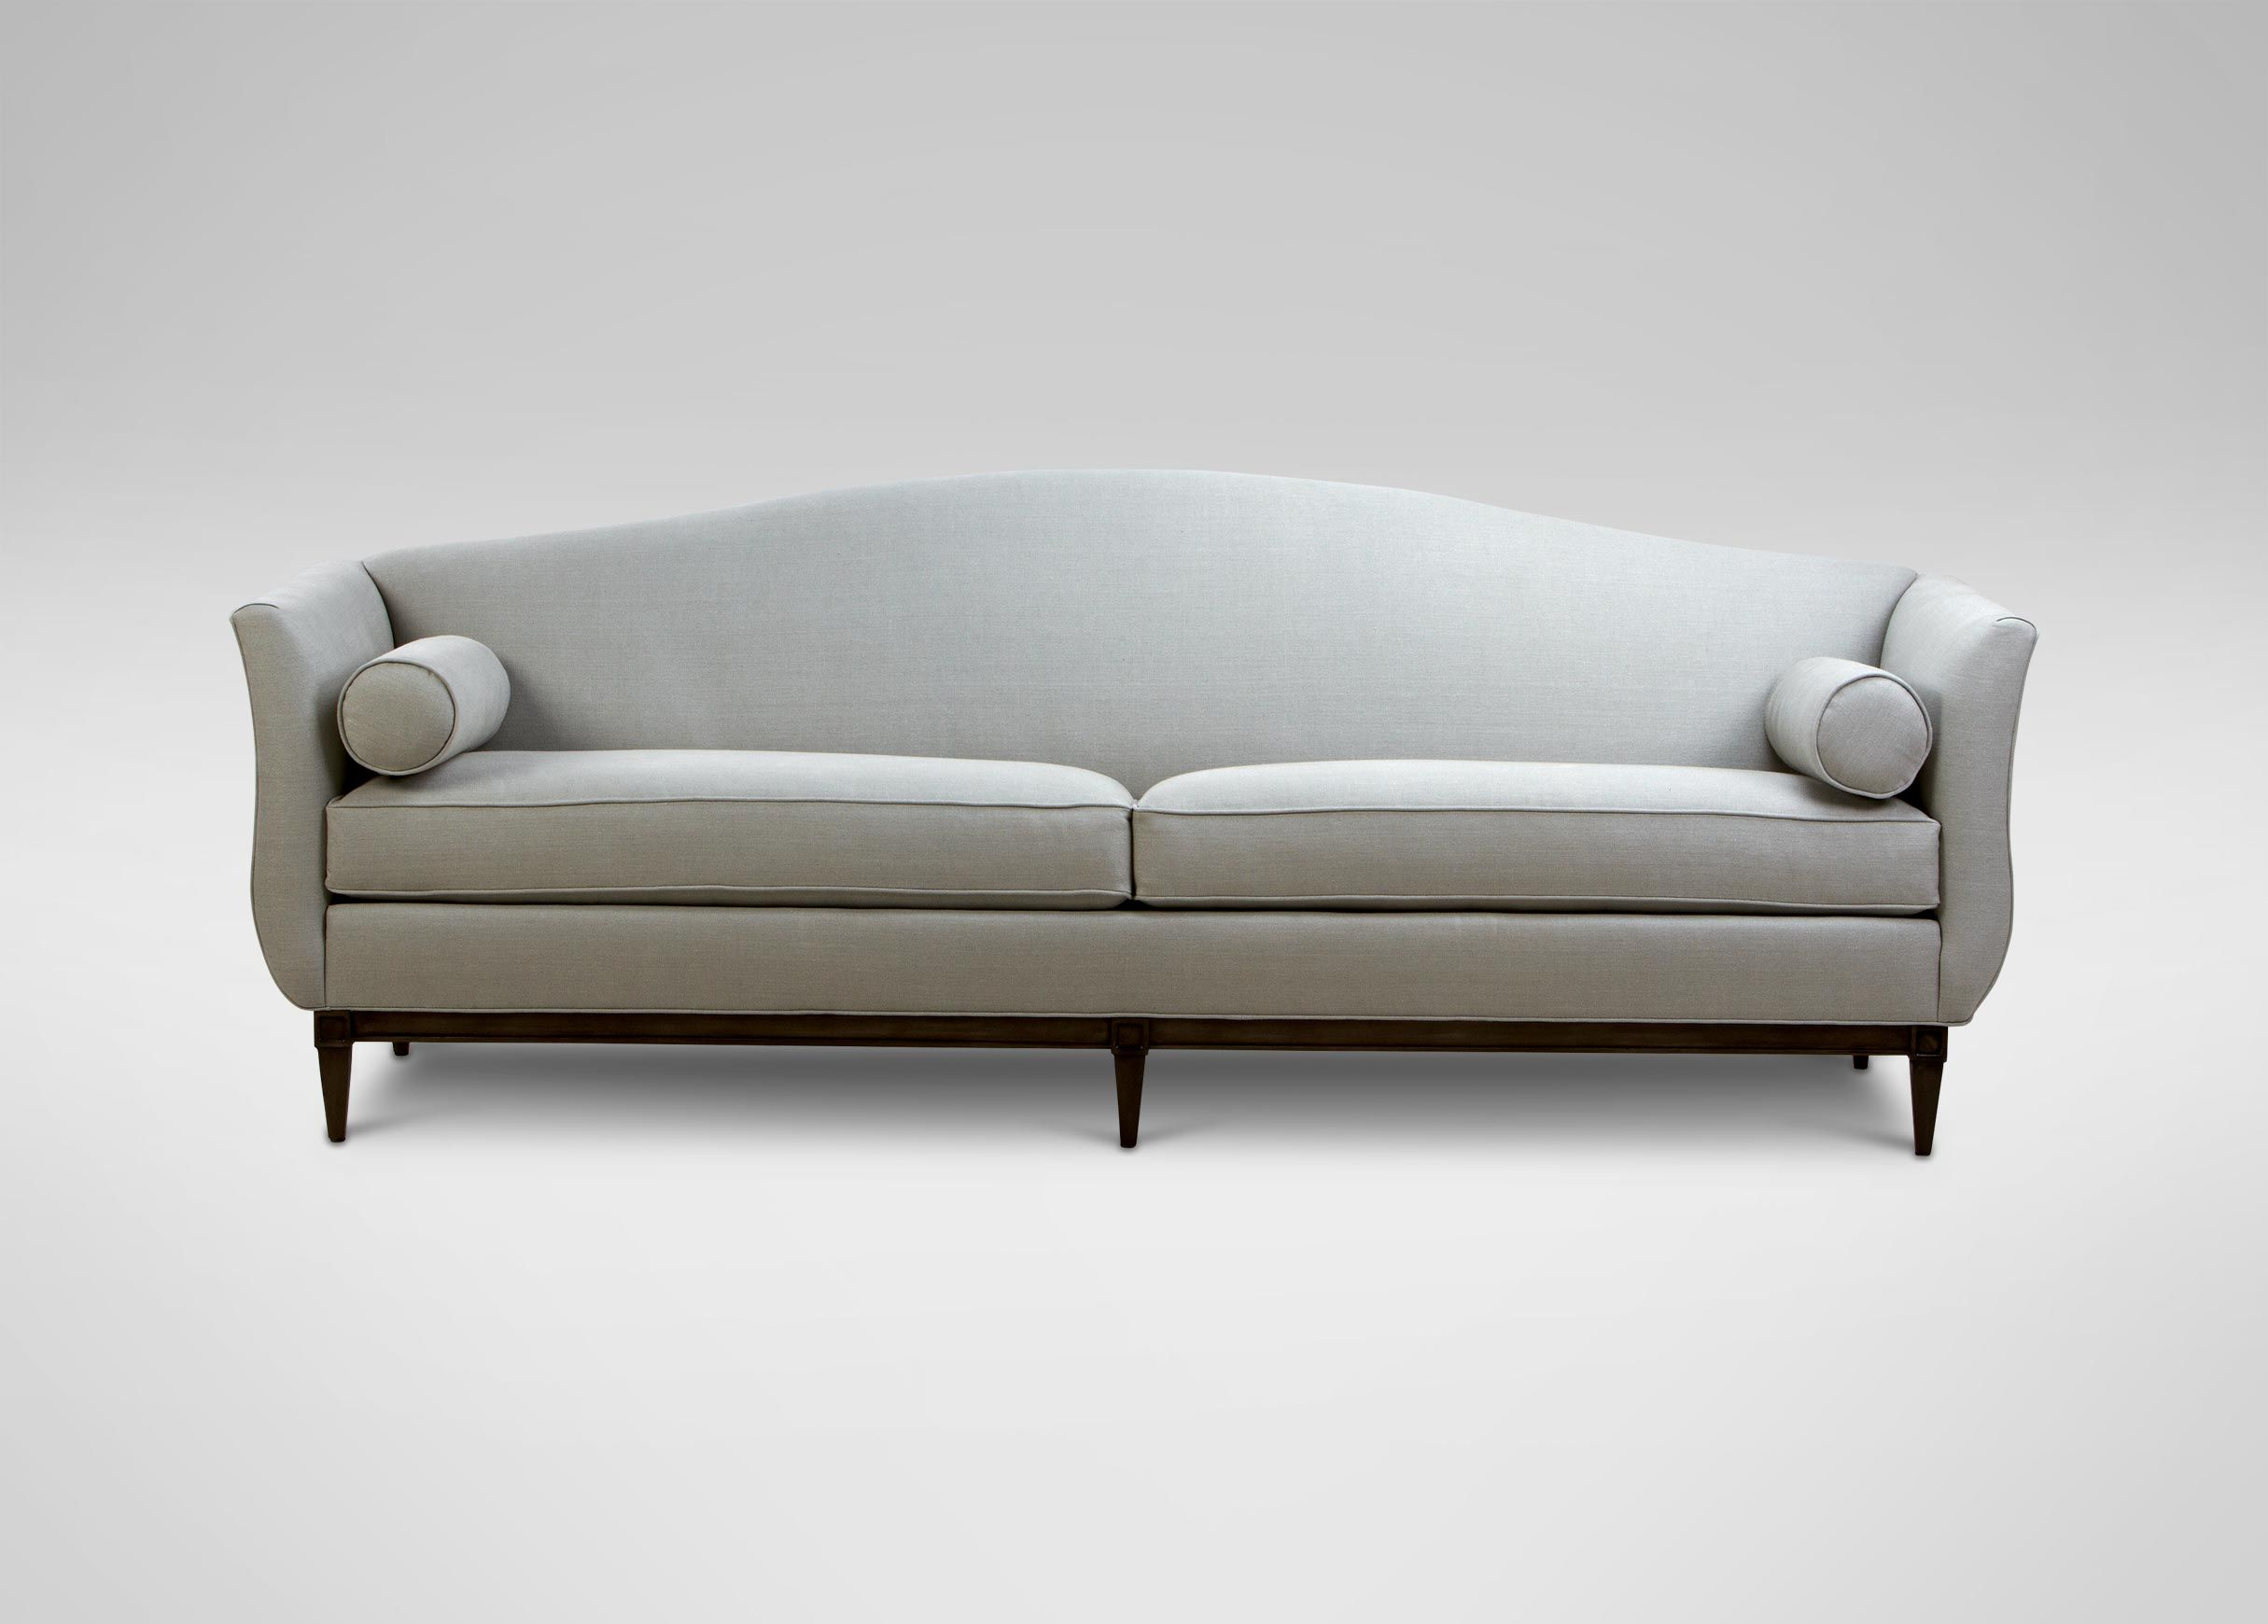 You May Not Realize It But The Style Of Sofa Choose Says A Whole Lot About Your Personality